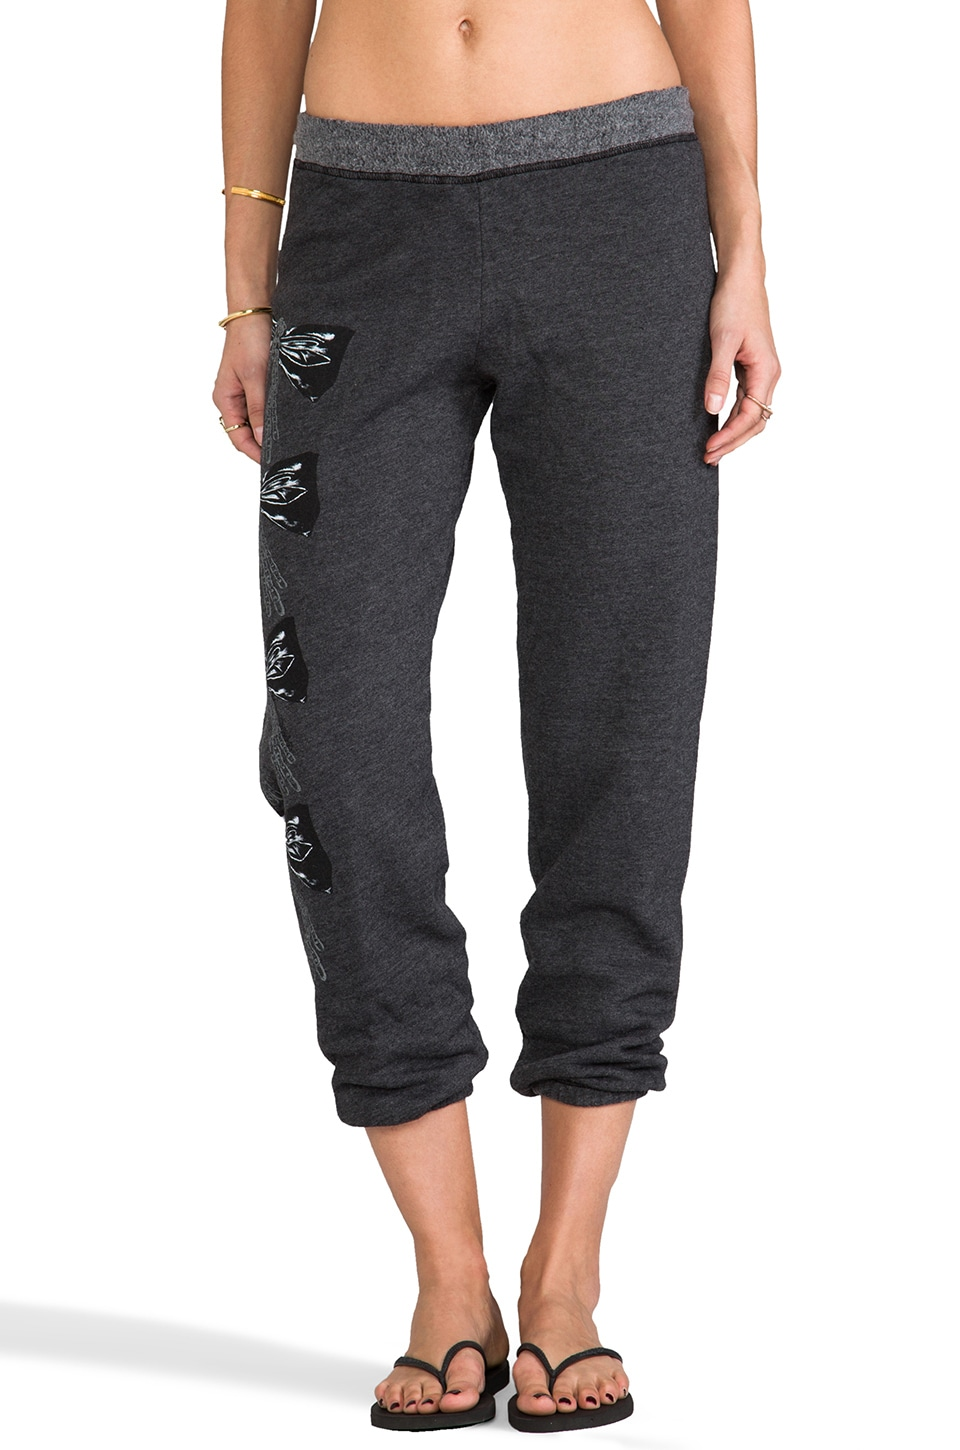 Lauren Moshi Gia Color Chain Bow Leg Sweatpants in Black